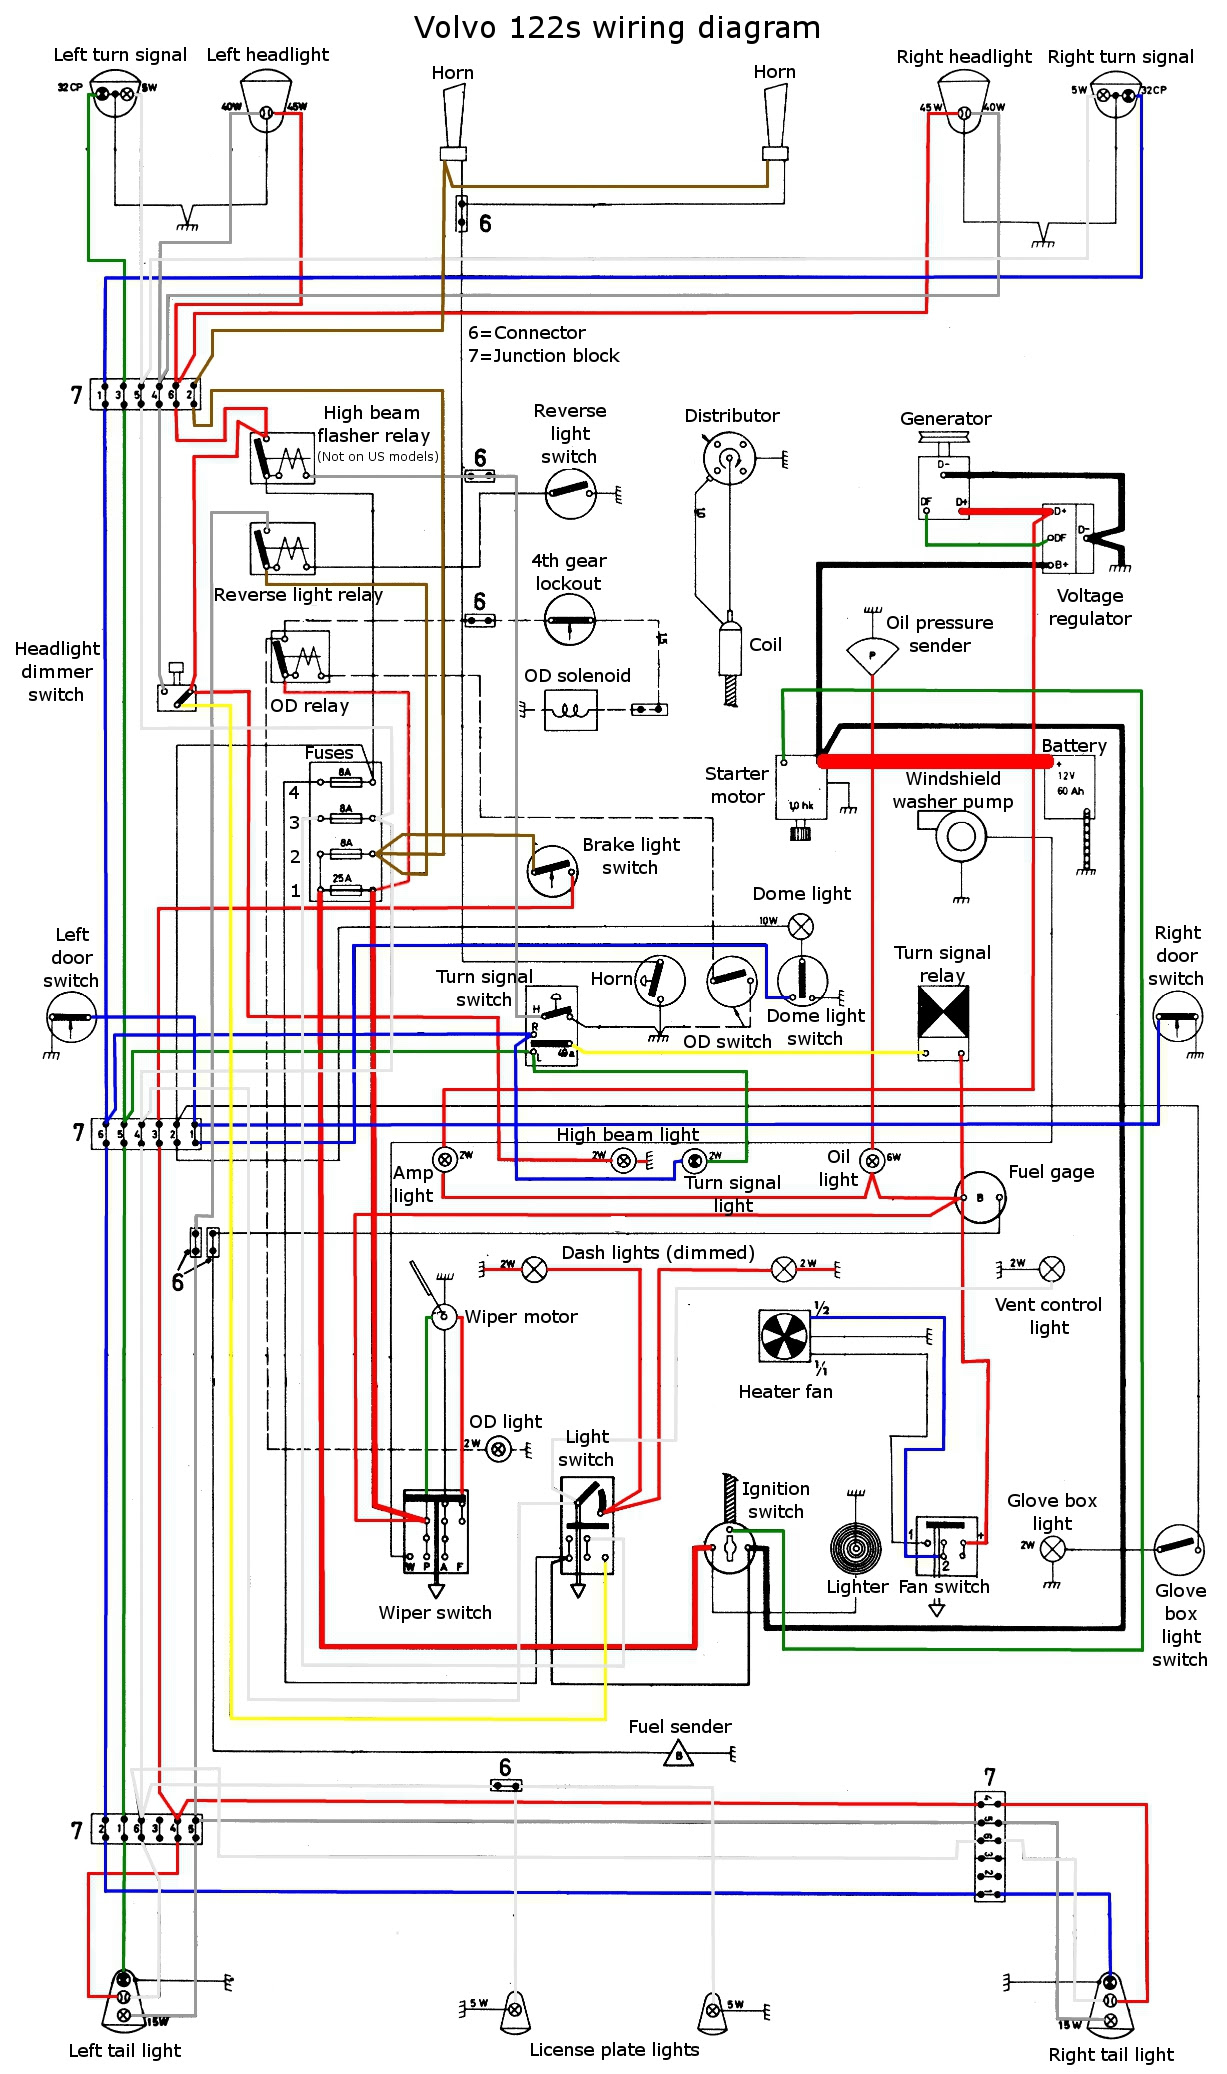 Diagram 2011 Volvo V7xc7s8wiring Diagram Full Version Hd Quality V7xc7s8wiring Diagram Blogxgoo Mefpie Fr